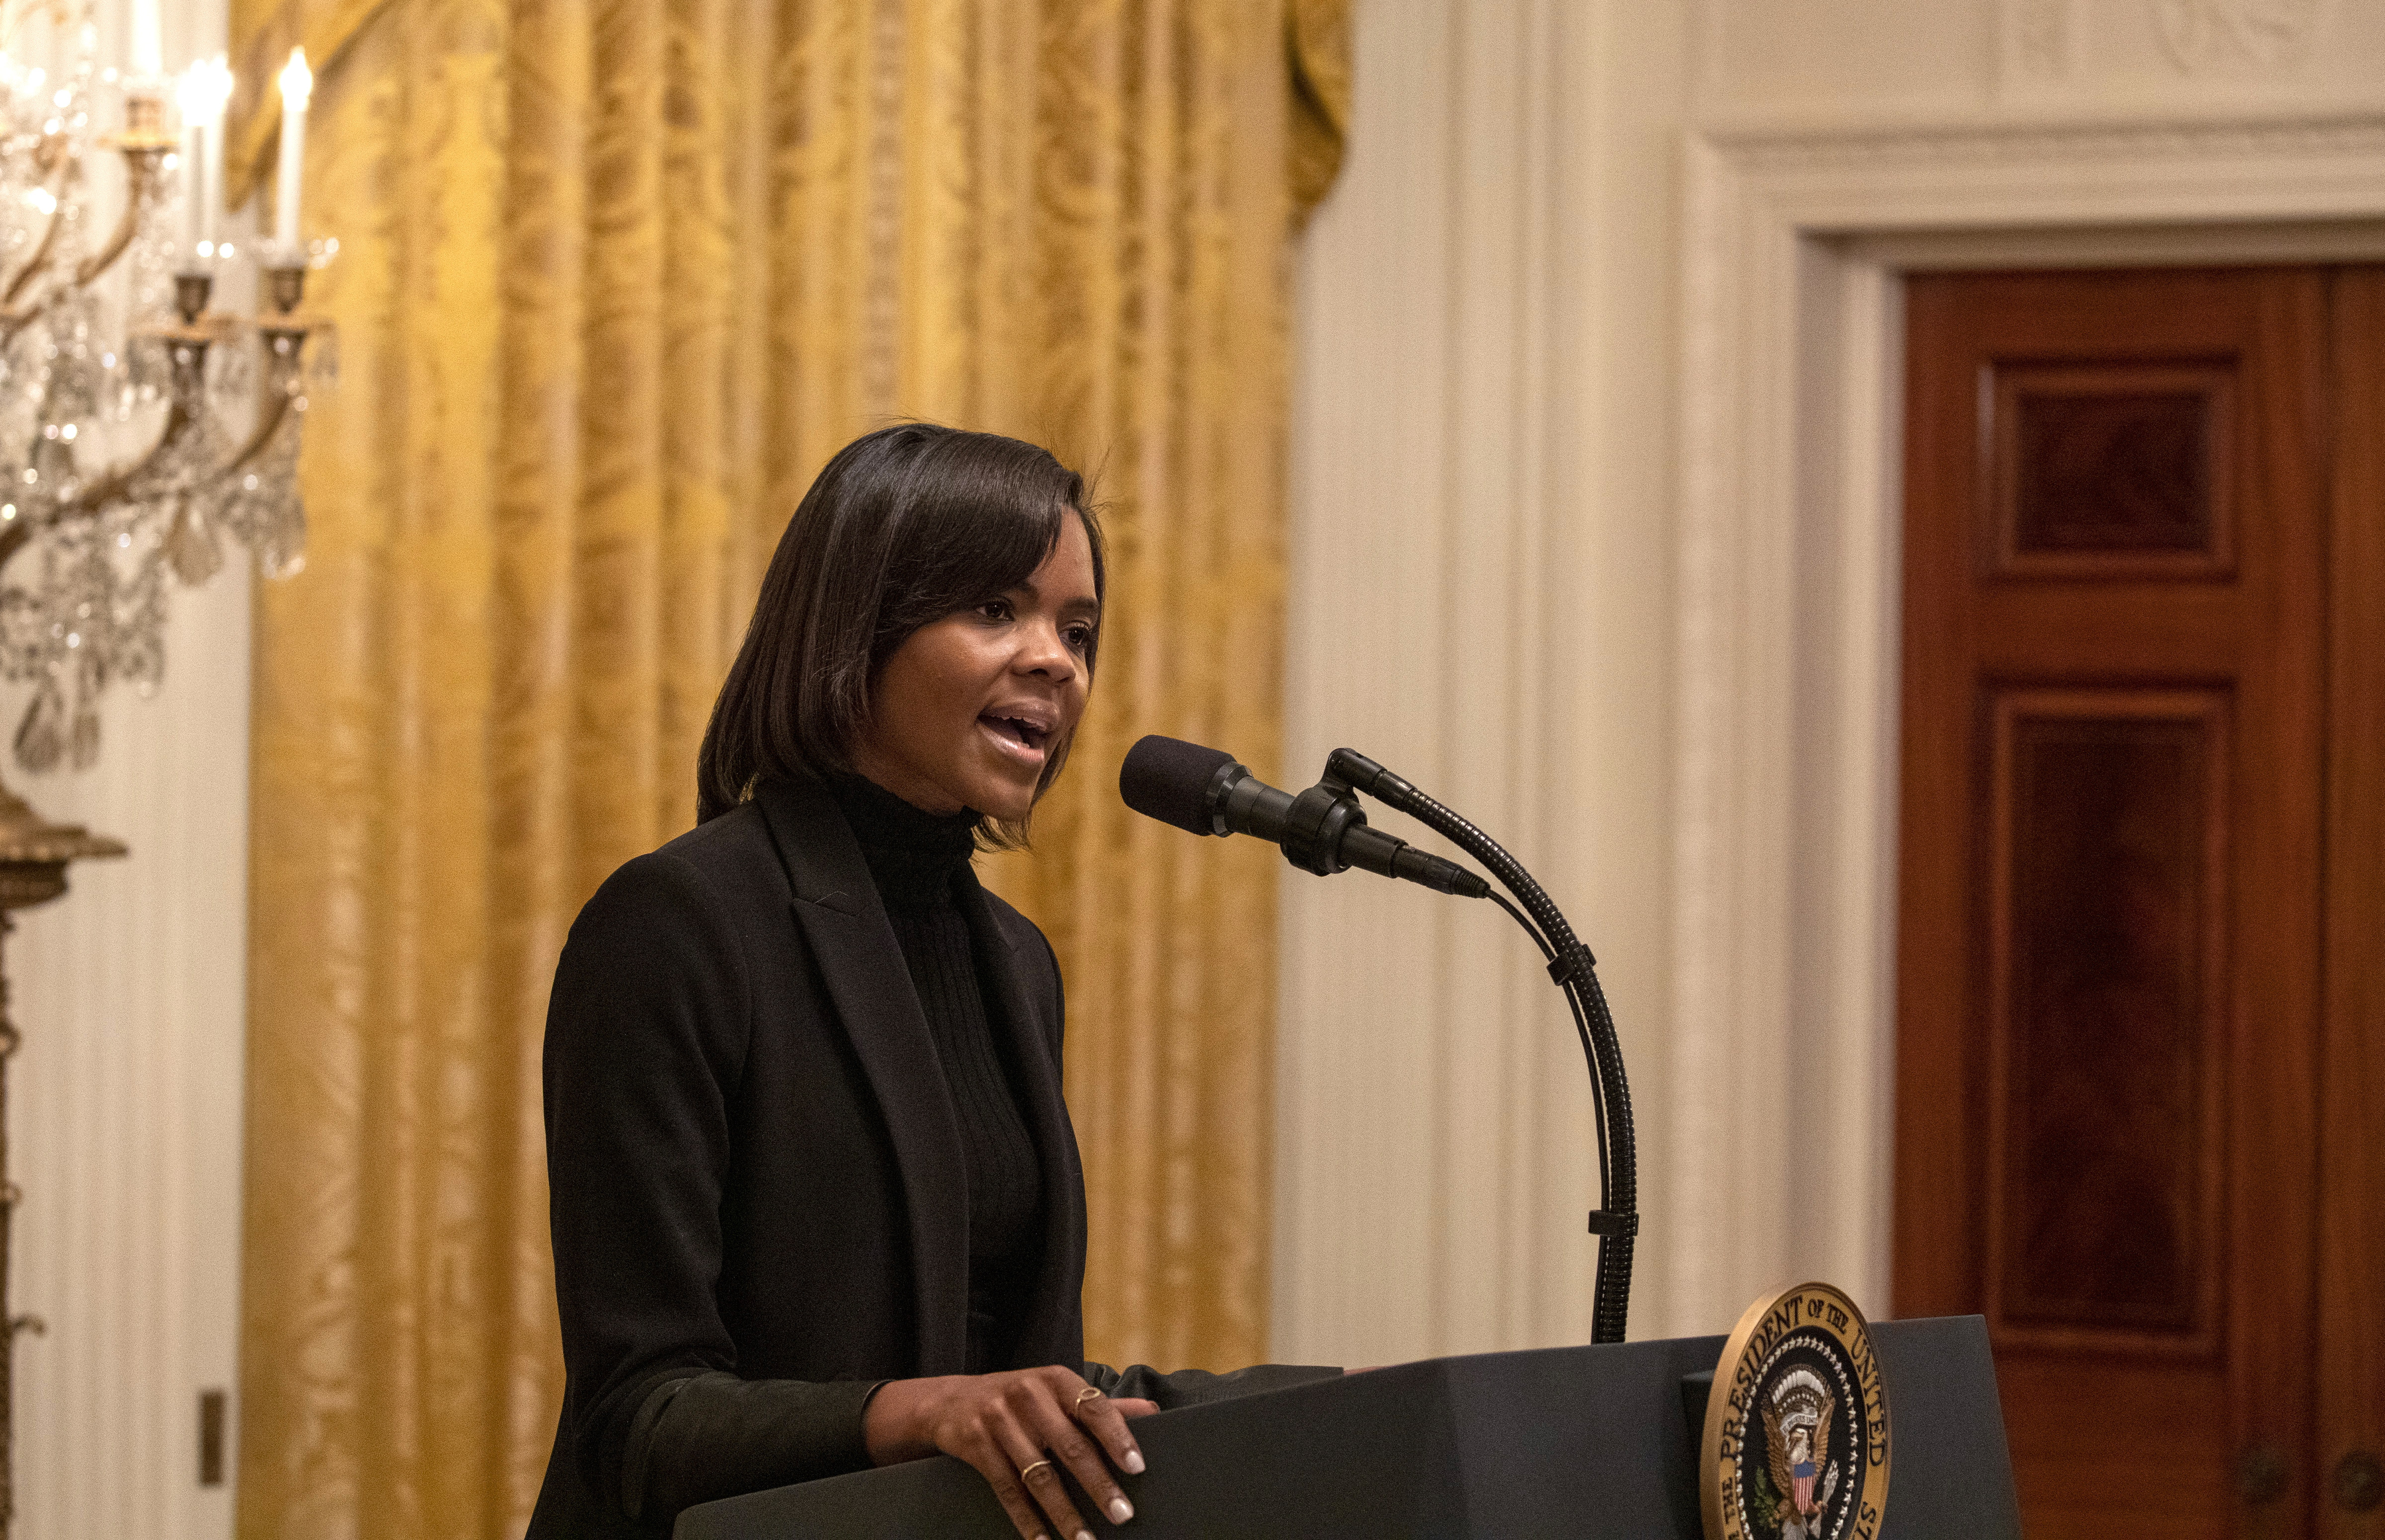 Candace Owens speaks at the Young Black Leadership Summit 2019 at the White House in Washington